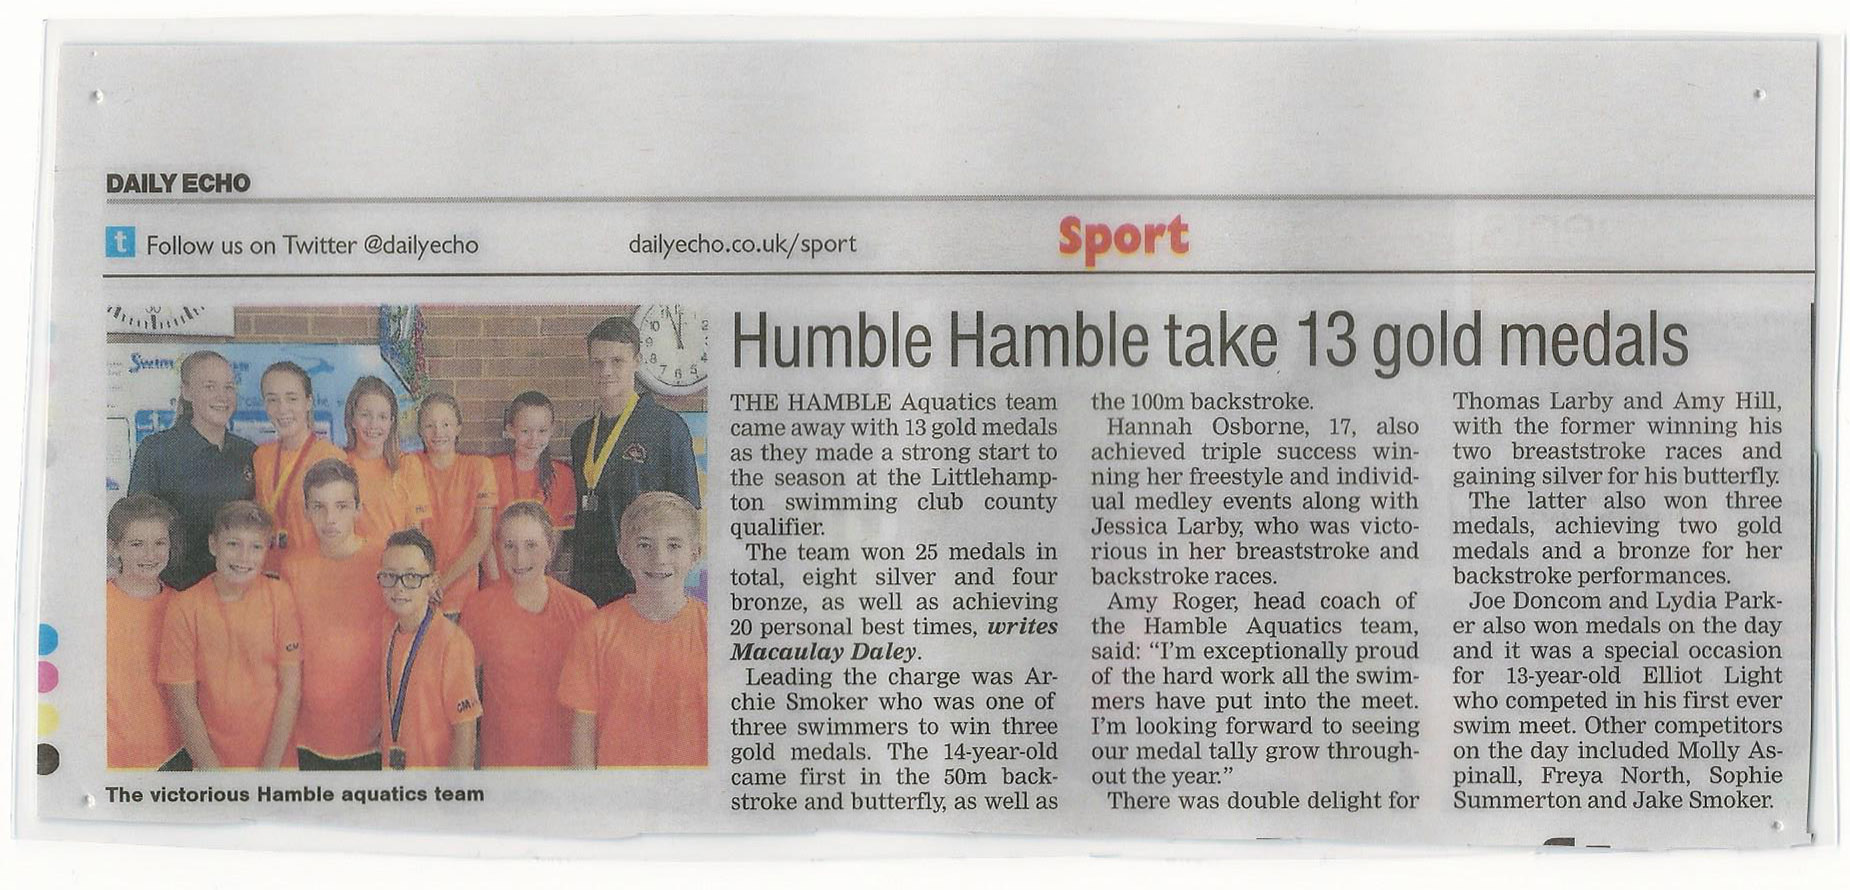 Hamble Aquatics - Daily Echo News Paper